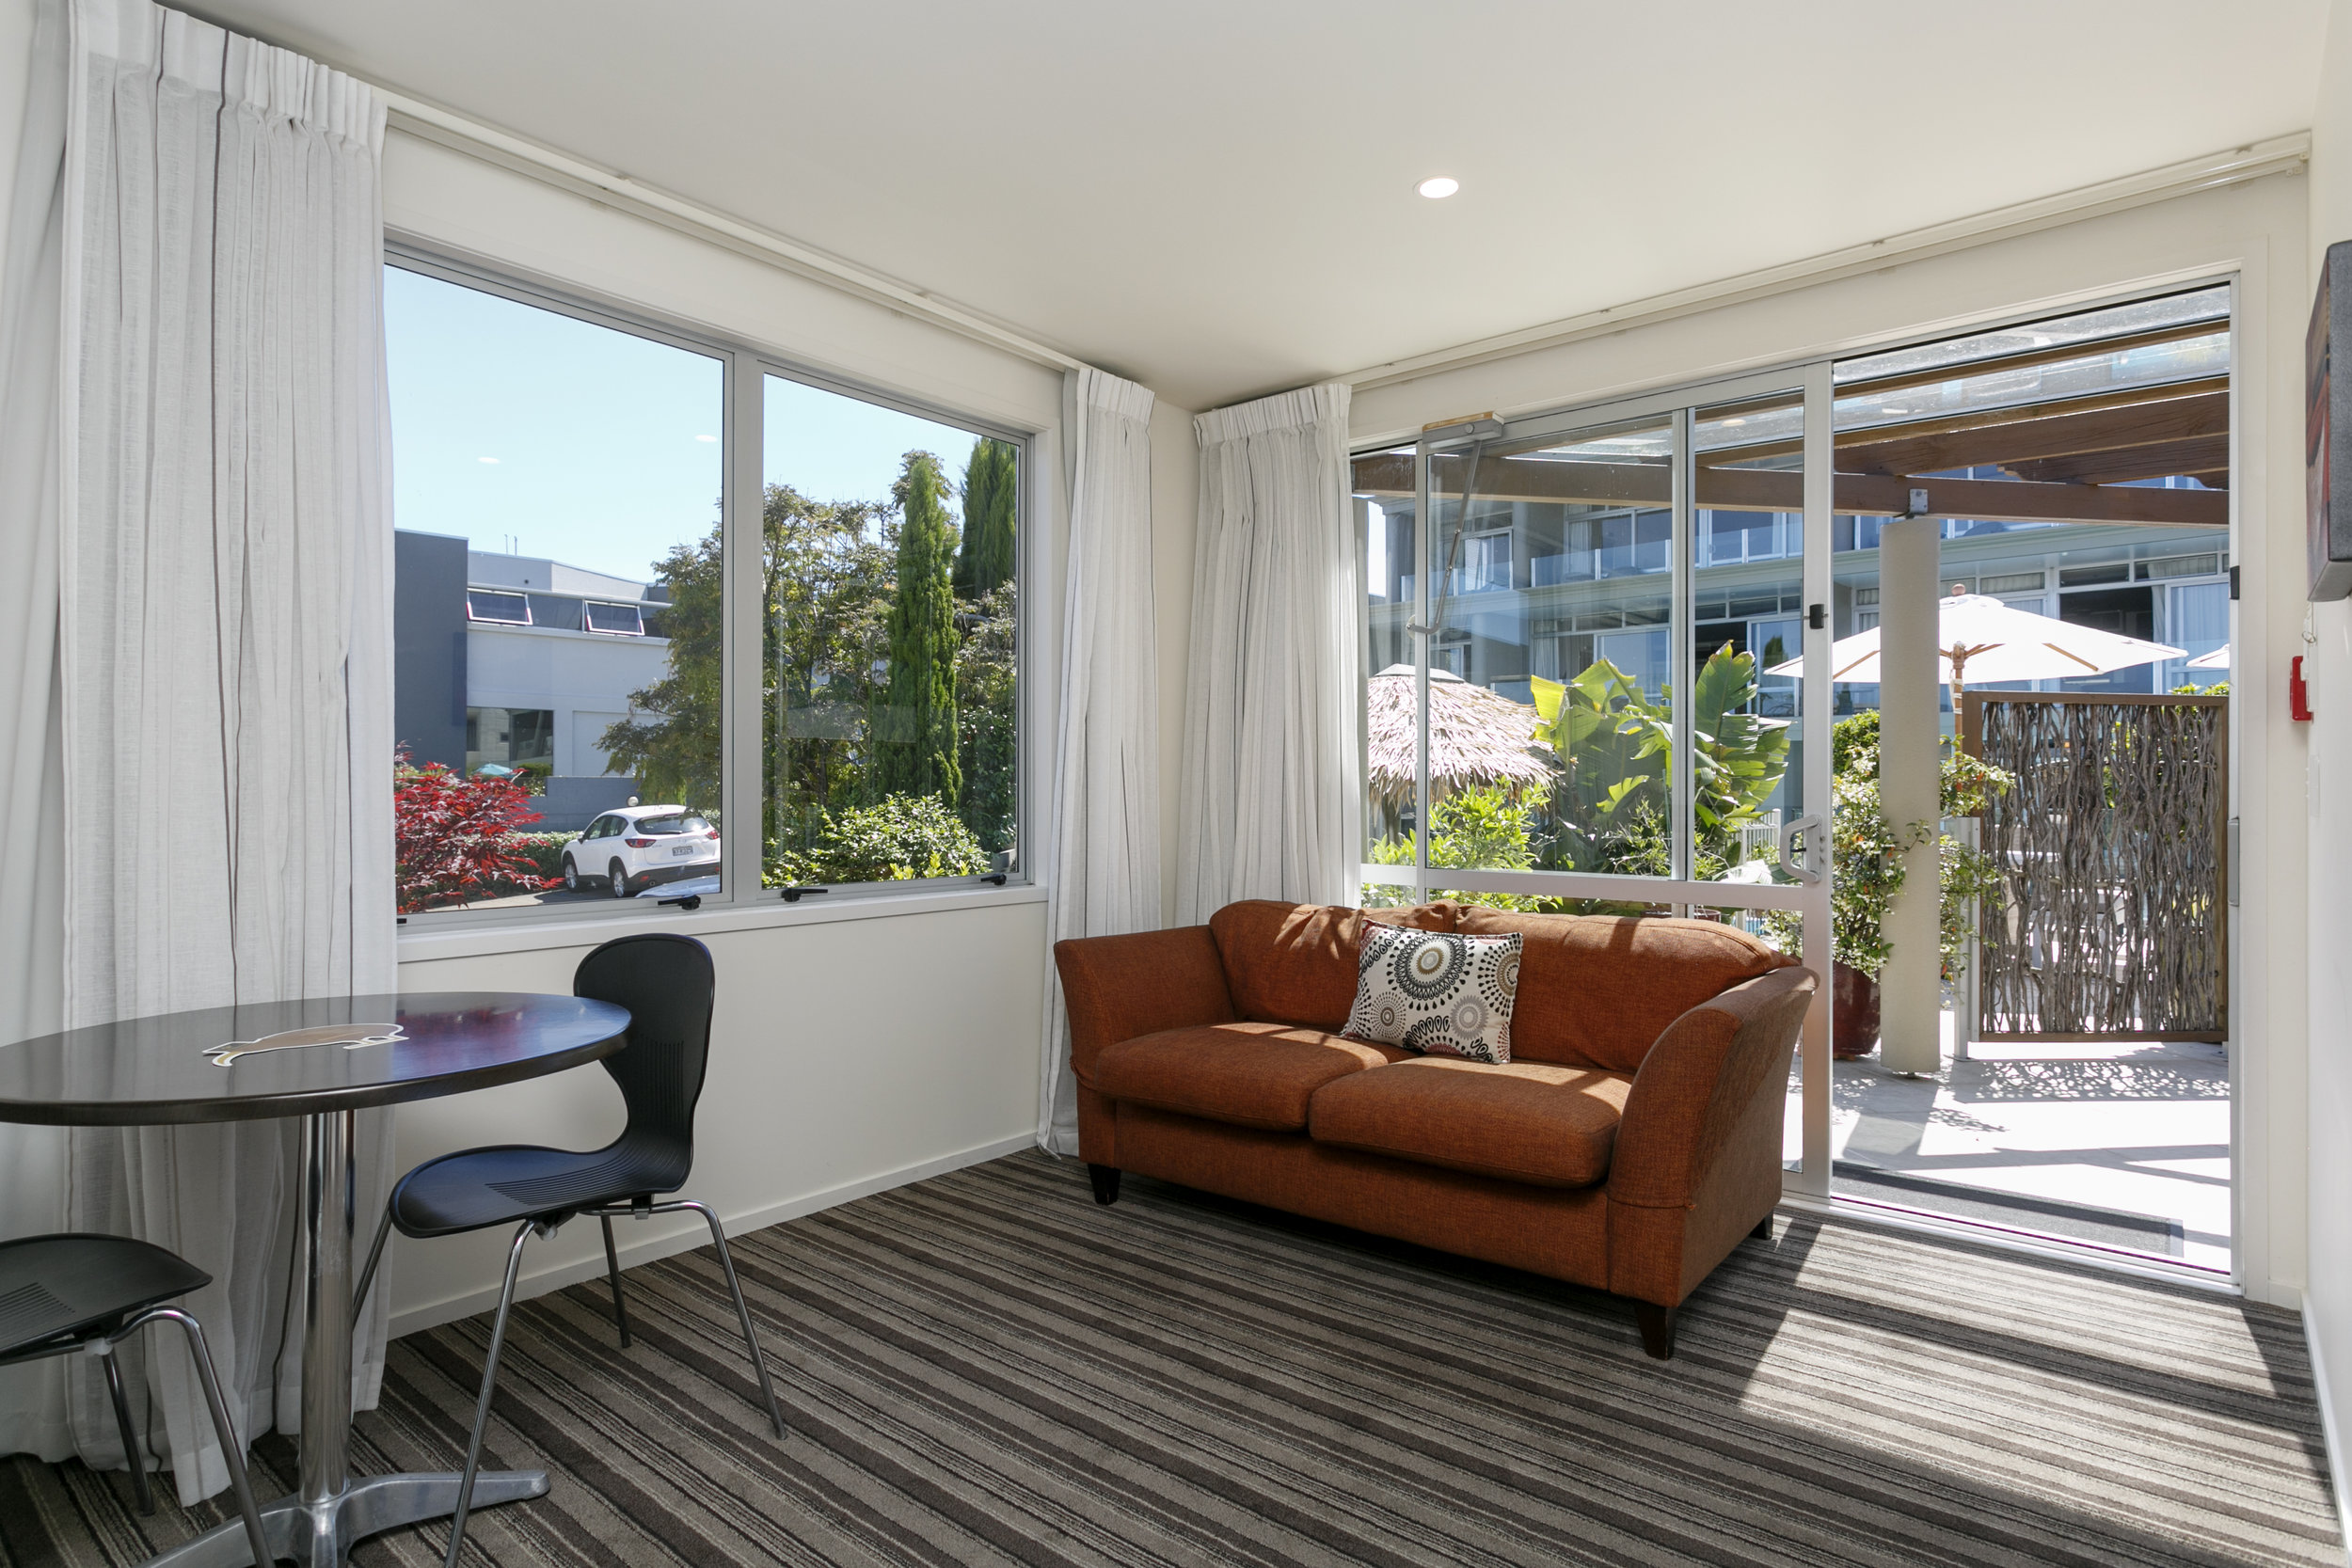 One Bedroom Gardev View living area looking out onto poolside patio area.jpg